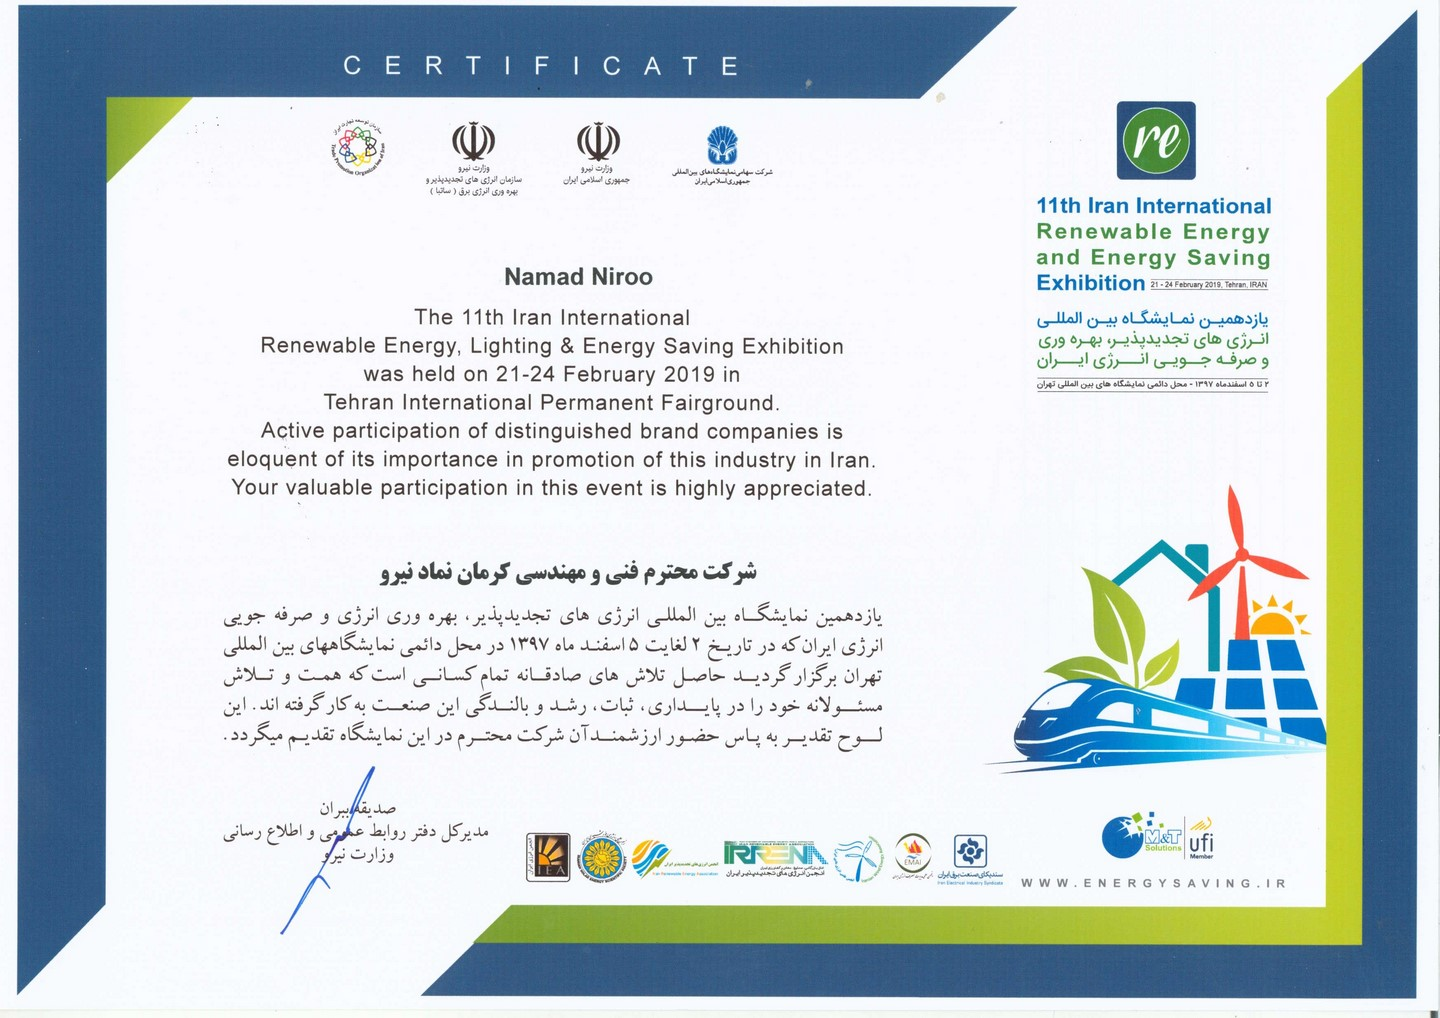 NEWS - IranRenewableEnergy11th - certificate